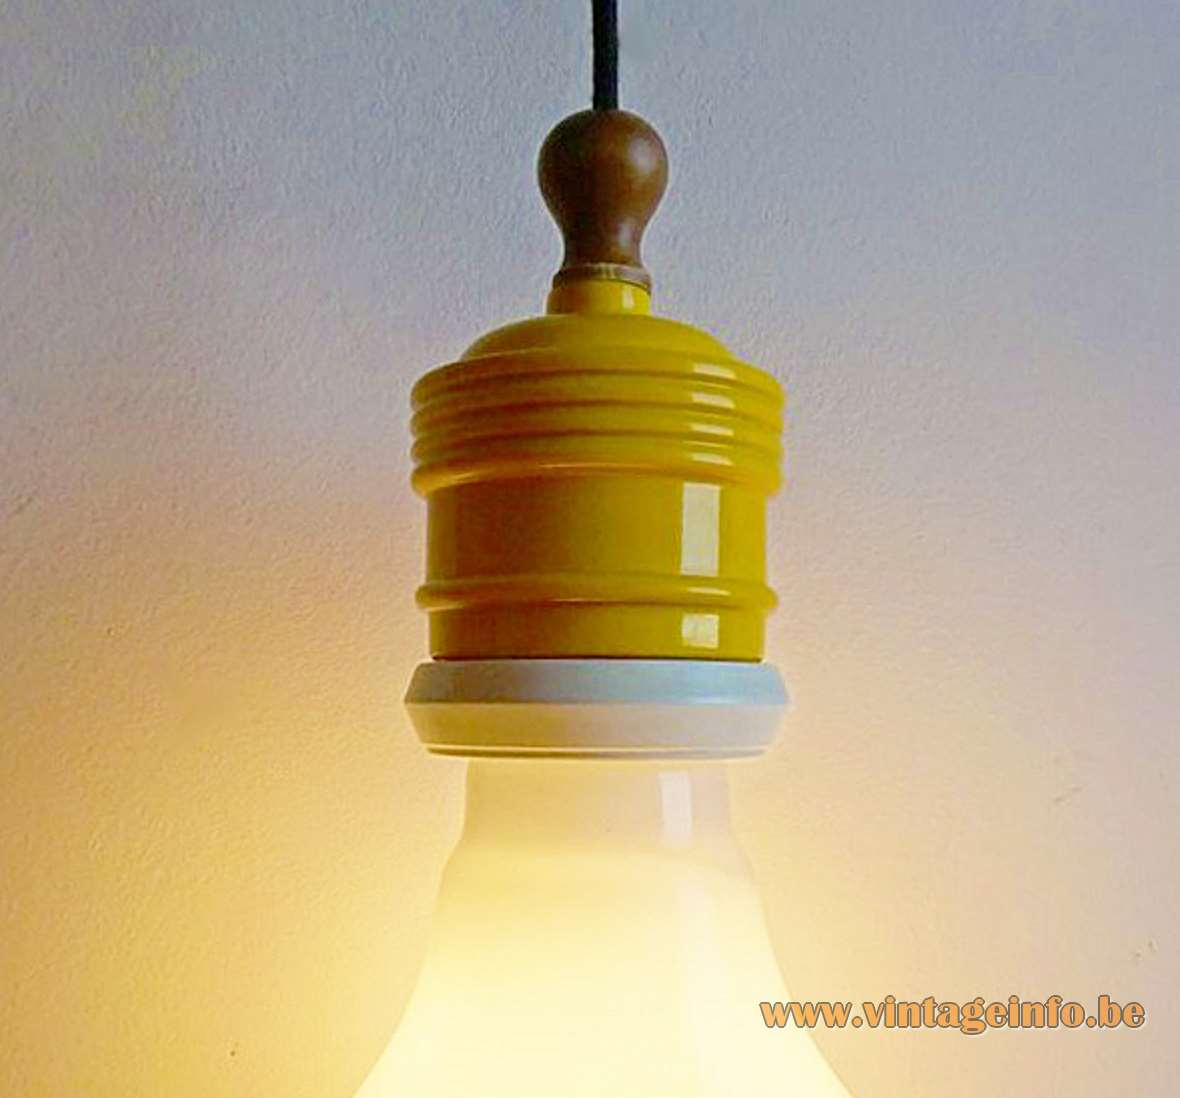 Metalarte Bulb Pendant Lamp white opal globe yellow and white painted metal wood top brass parts 1970s 1980s